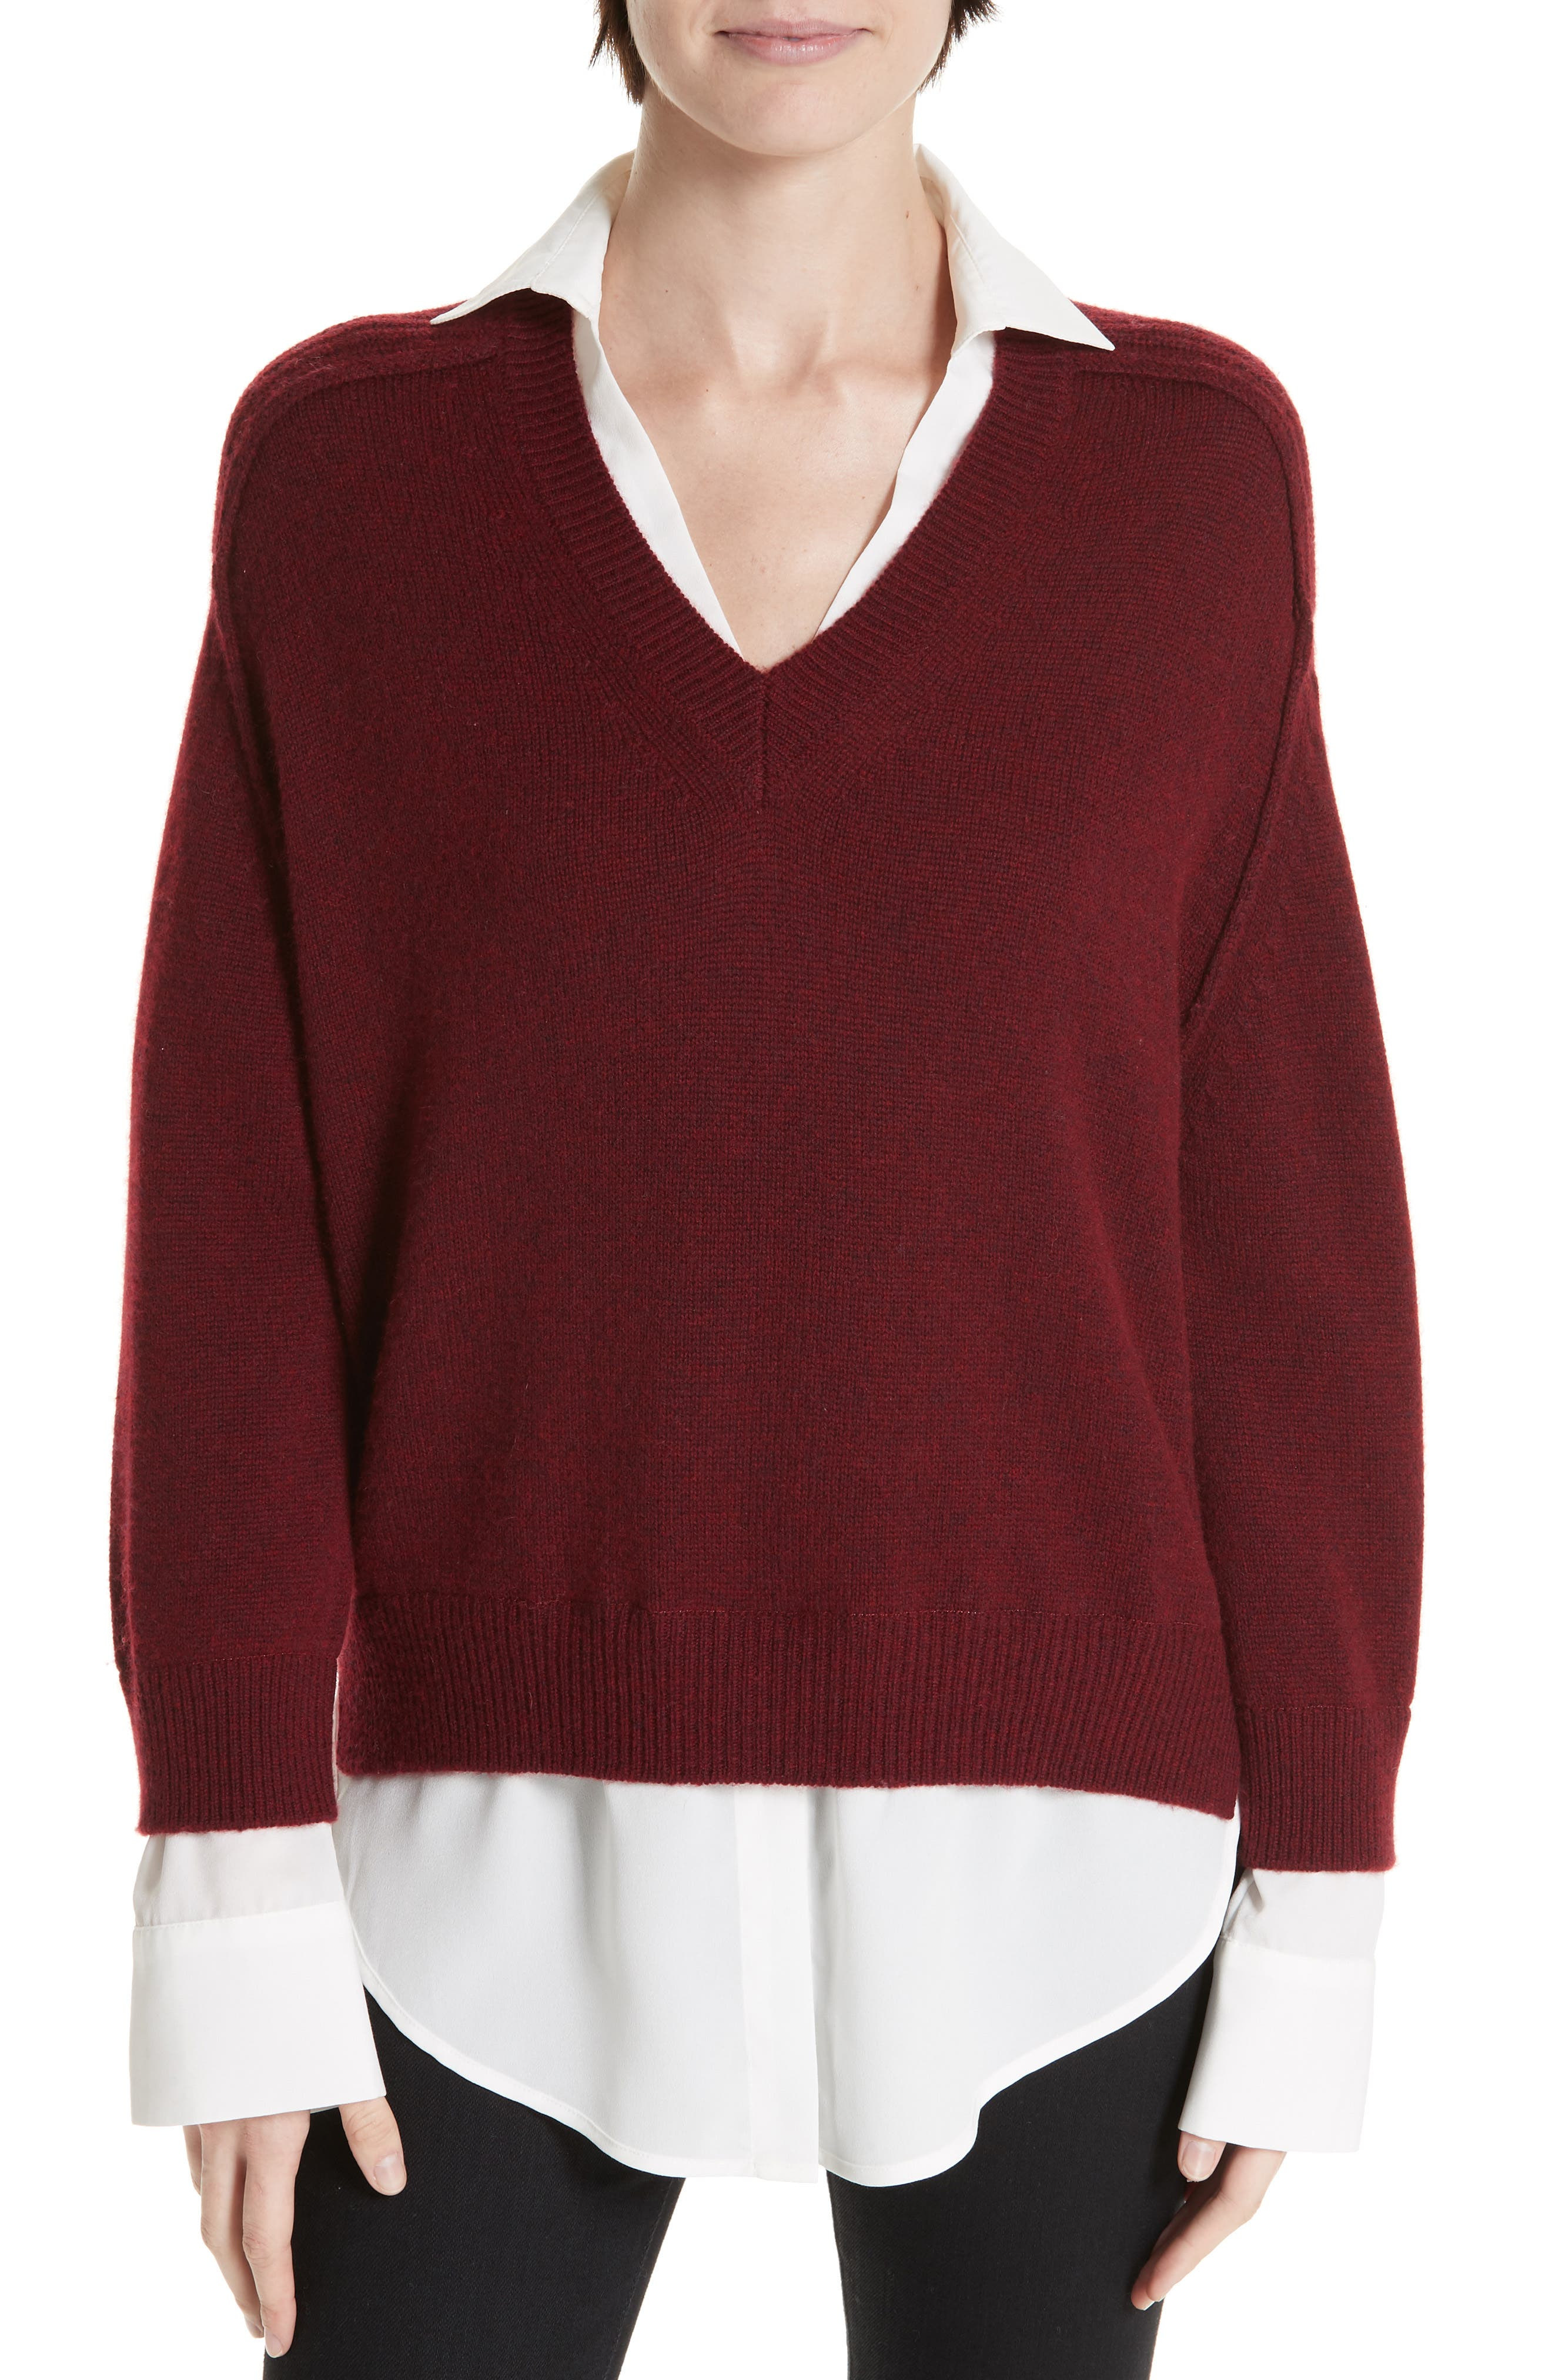 BROCHU WALKER Wool & Cashmere Layered Pullover in Barolo Red With White